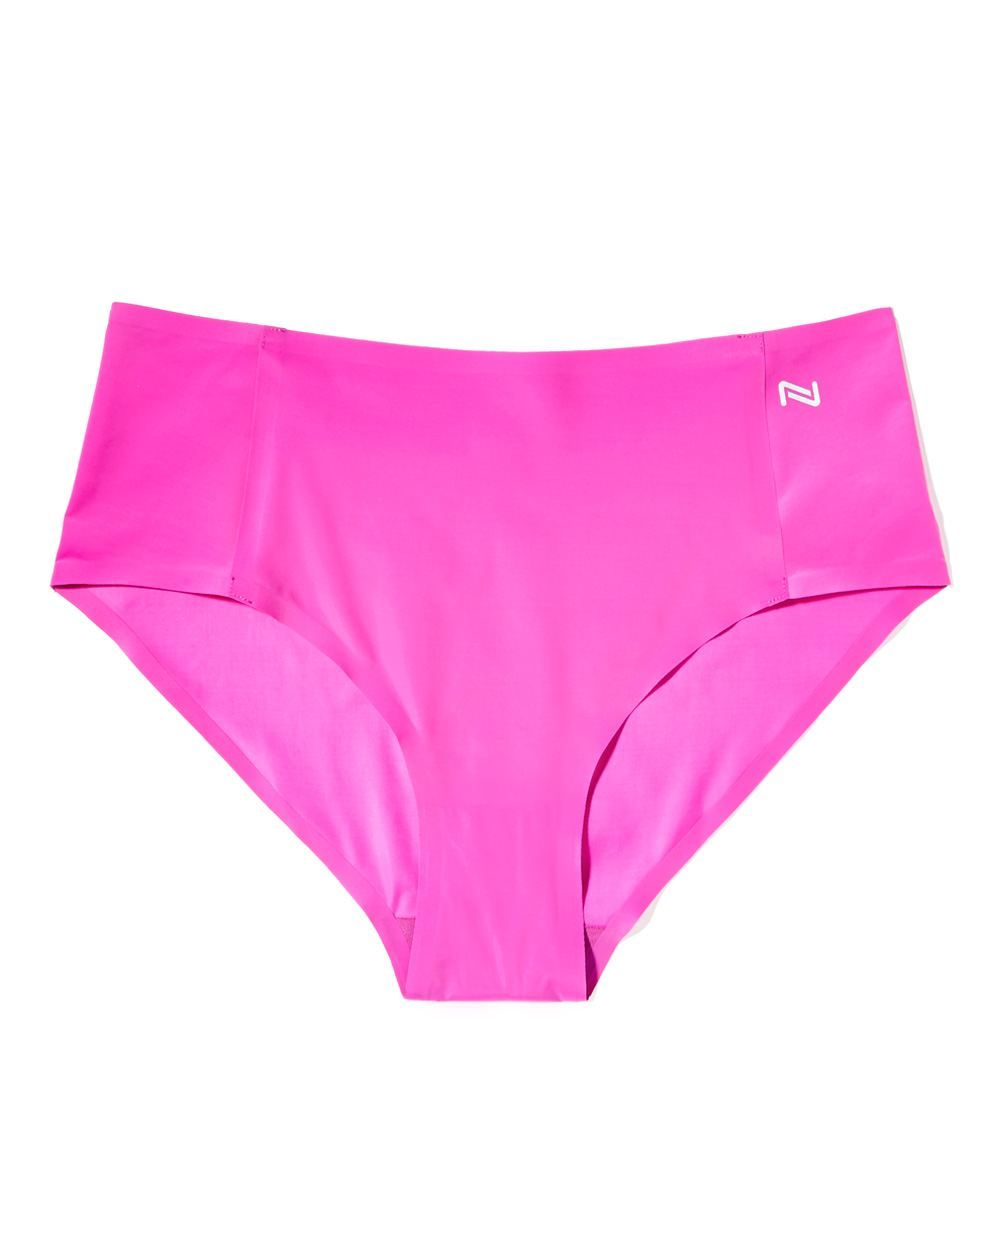 1b14beafd75 The right underwear is a key element of any training wardrobe. Add this  microfiber plus size panty to your gear!